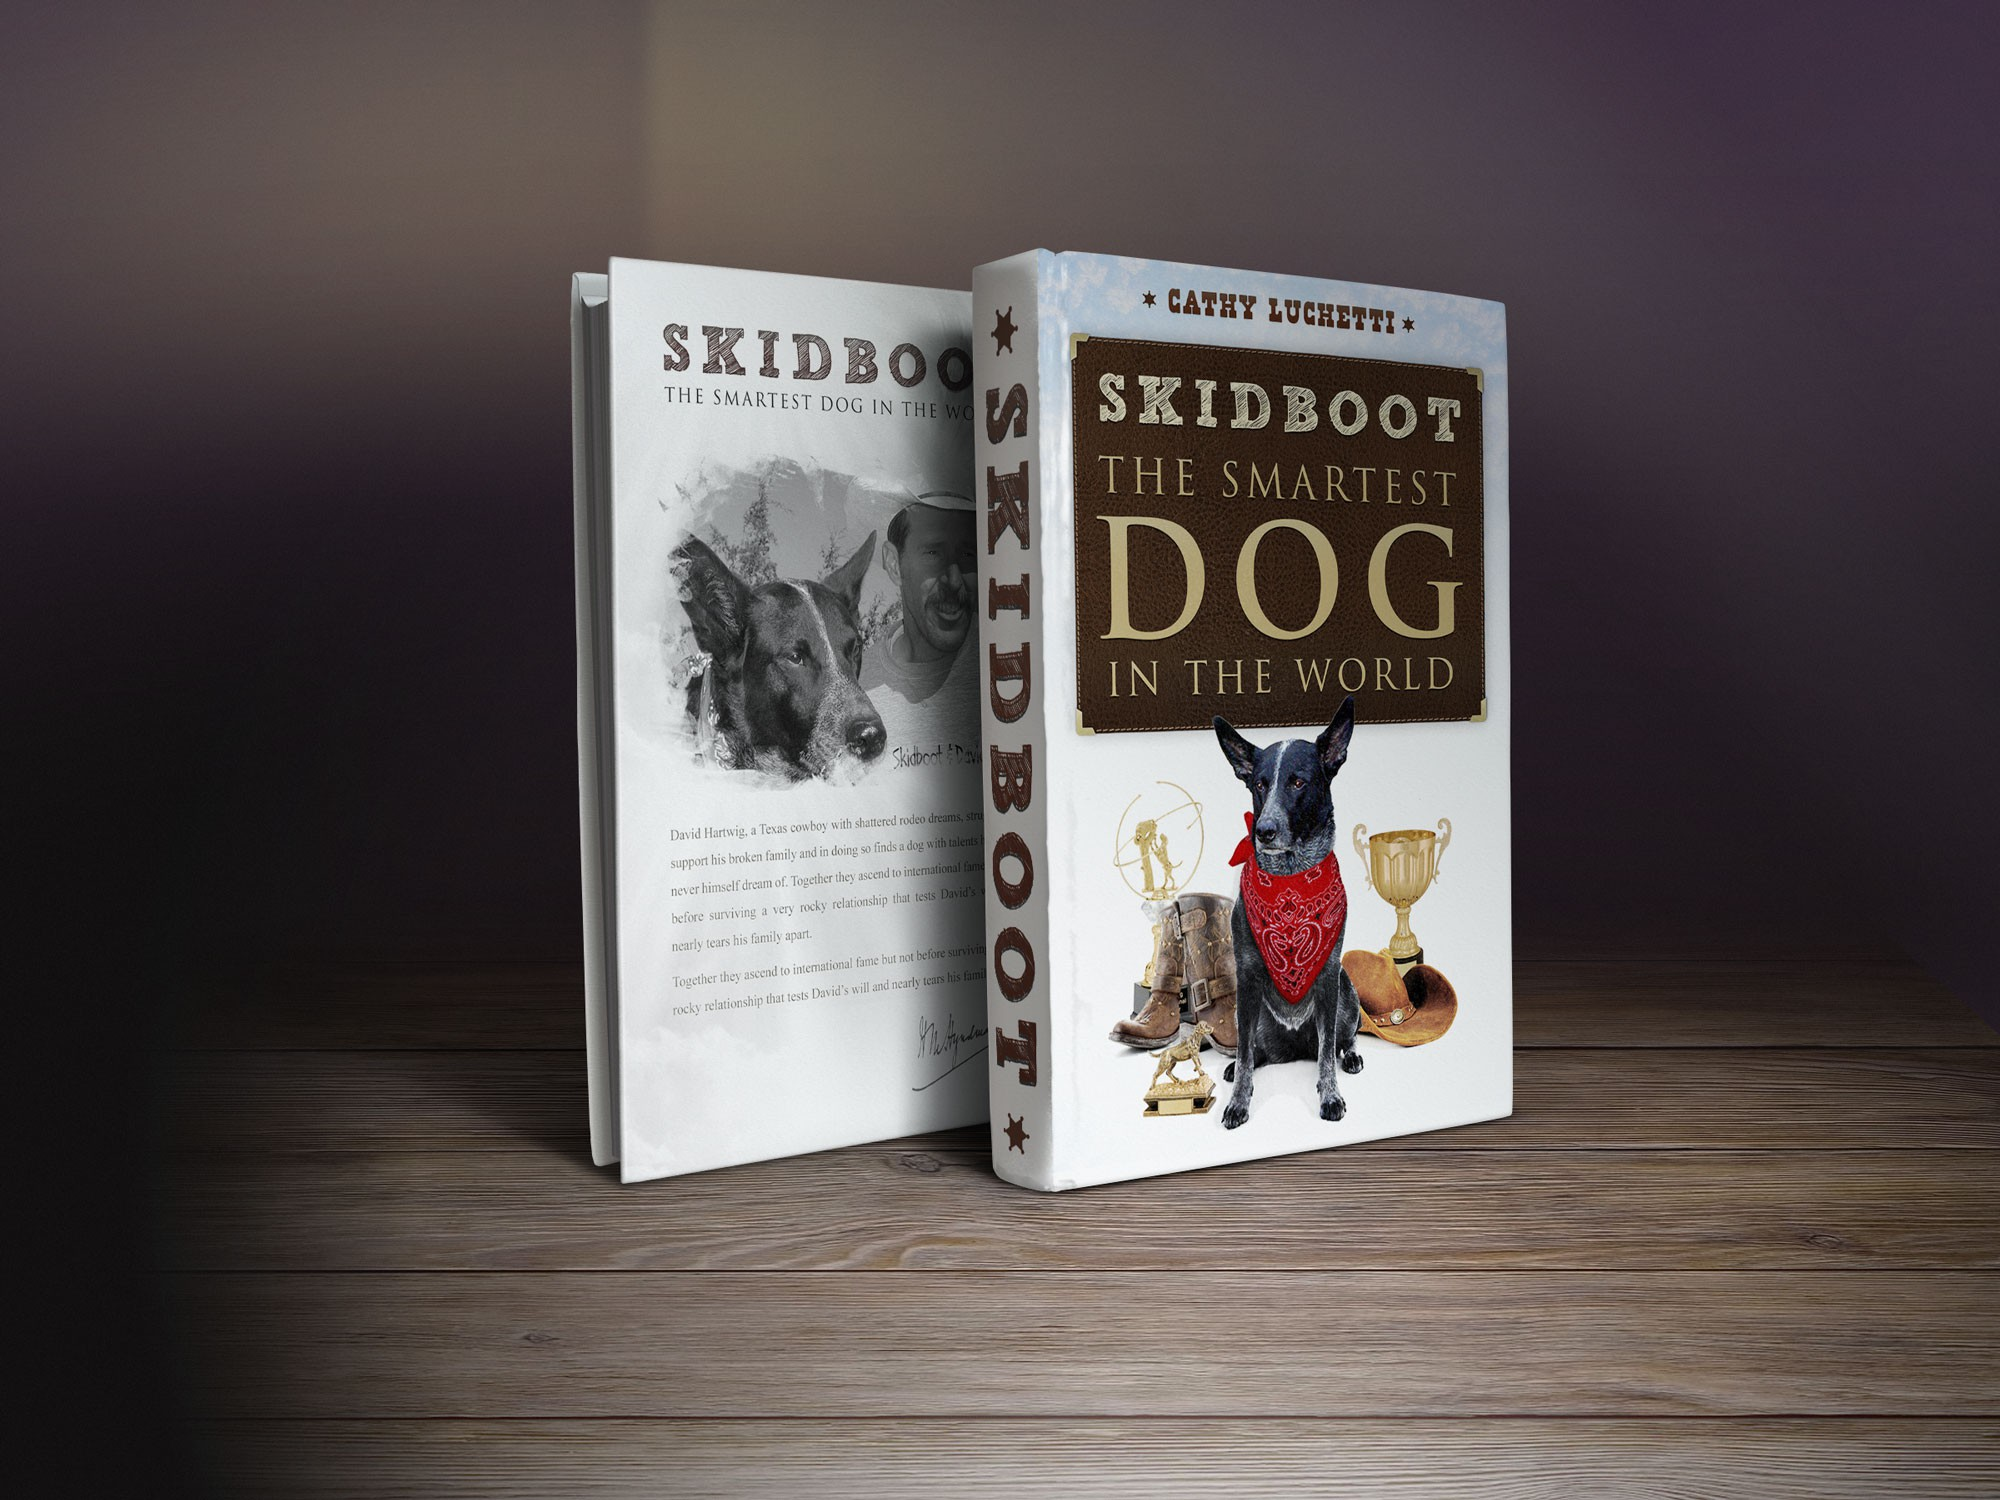 book or magazine cover for Project Skidboot